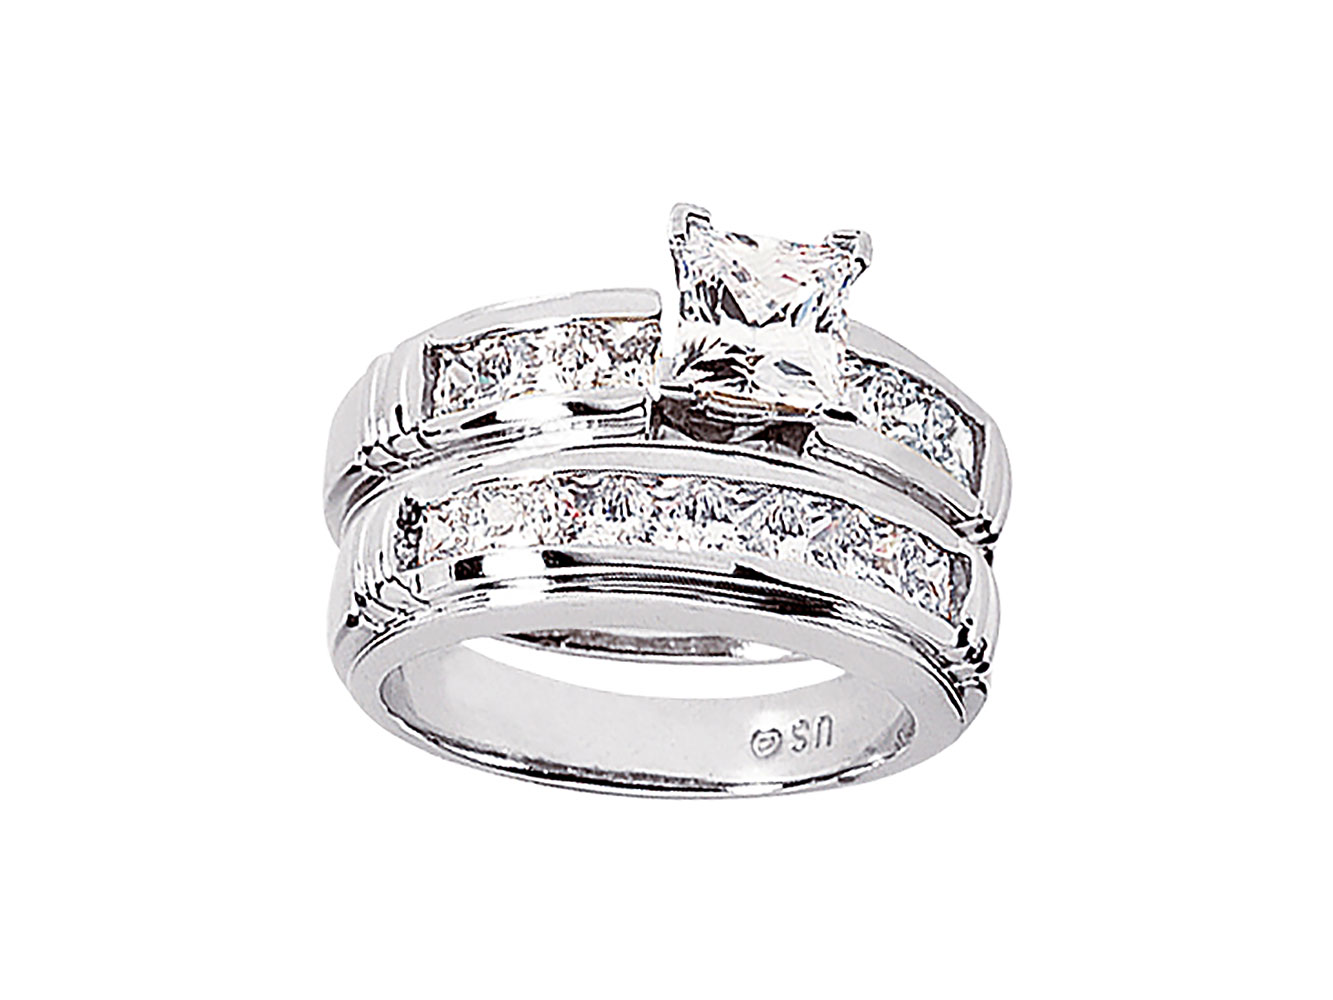 10k wedding ring 2 25ct princess engagement ring wedding band 1013